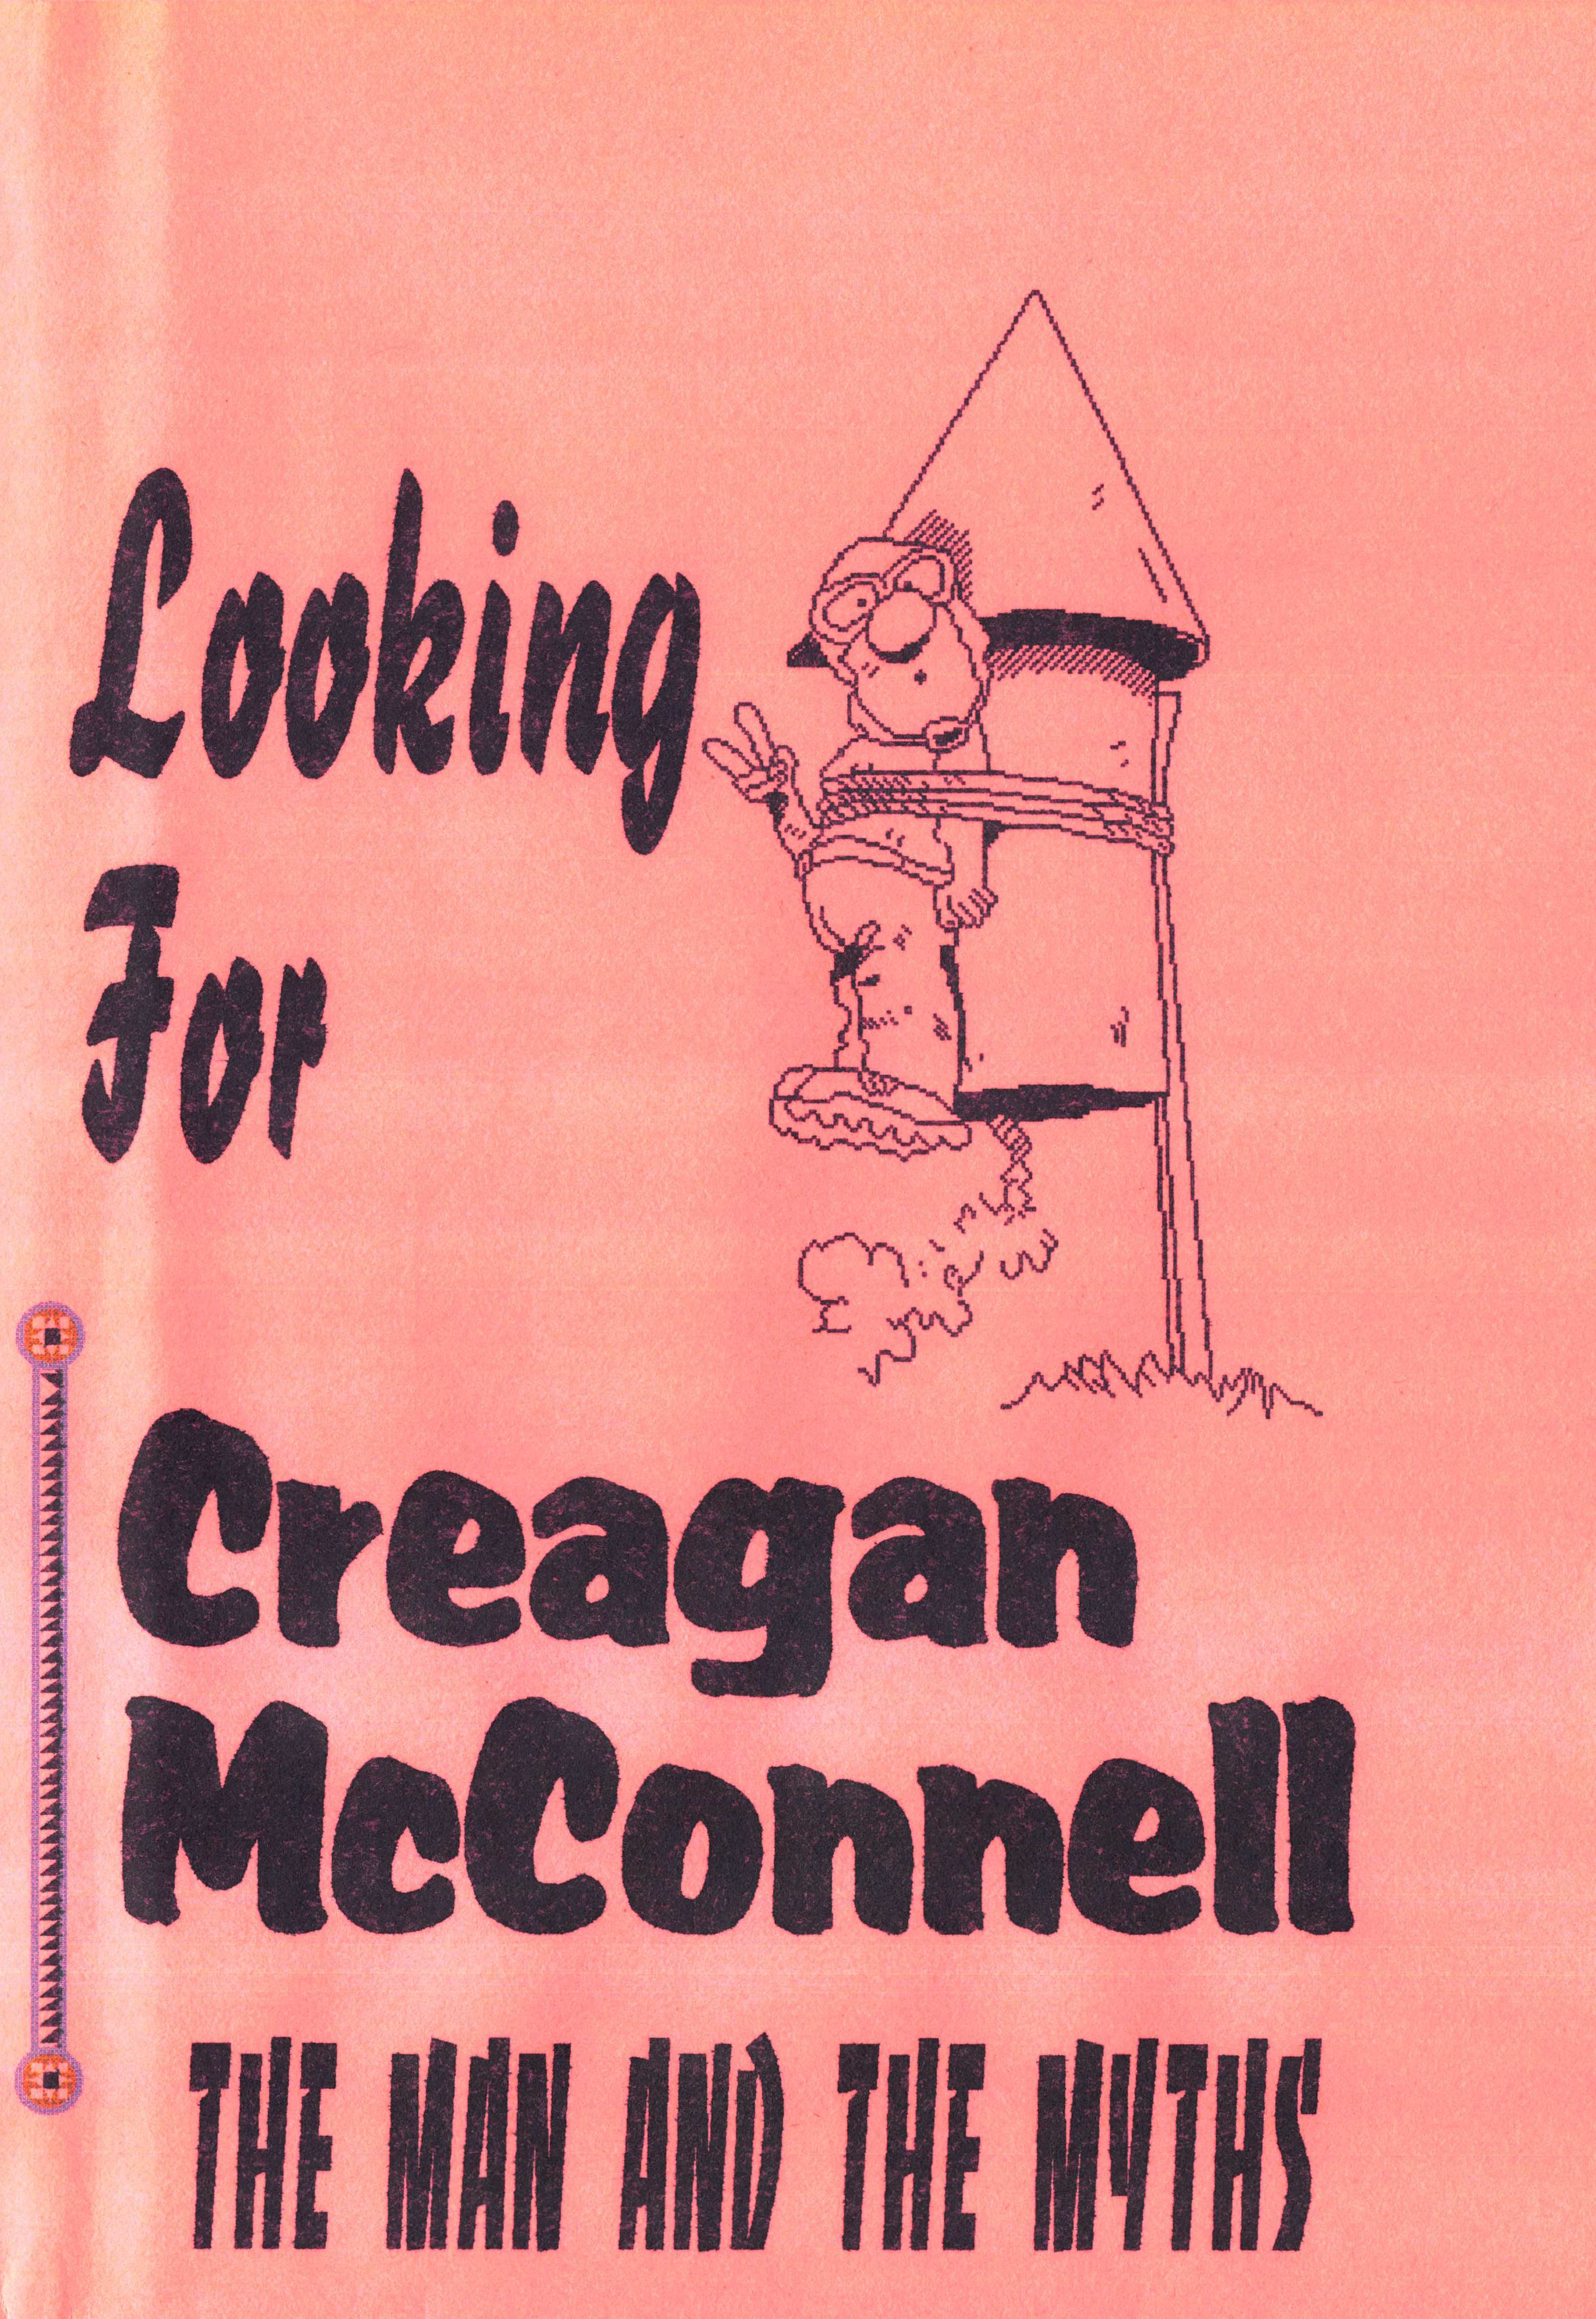 1994-looking-for-creagan-mcconnell-vhs-cover